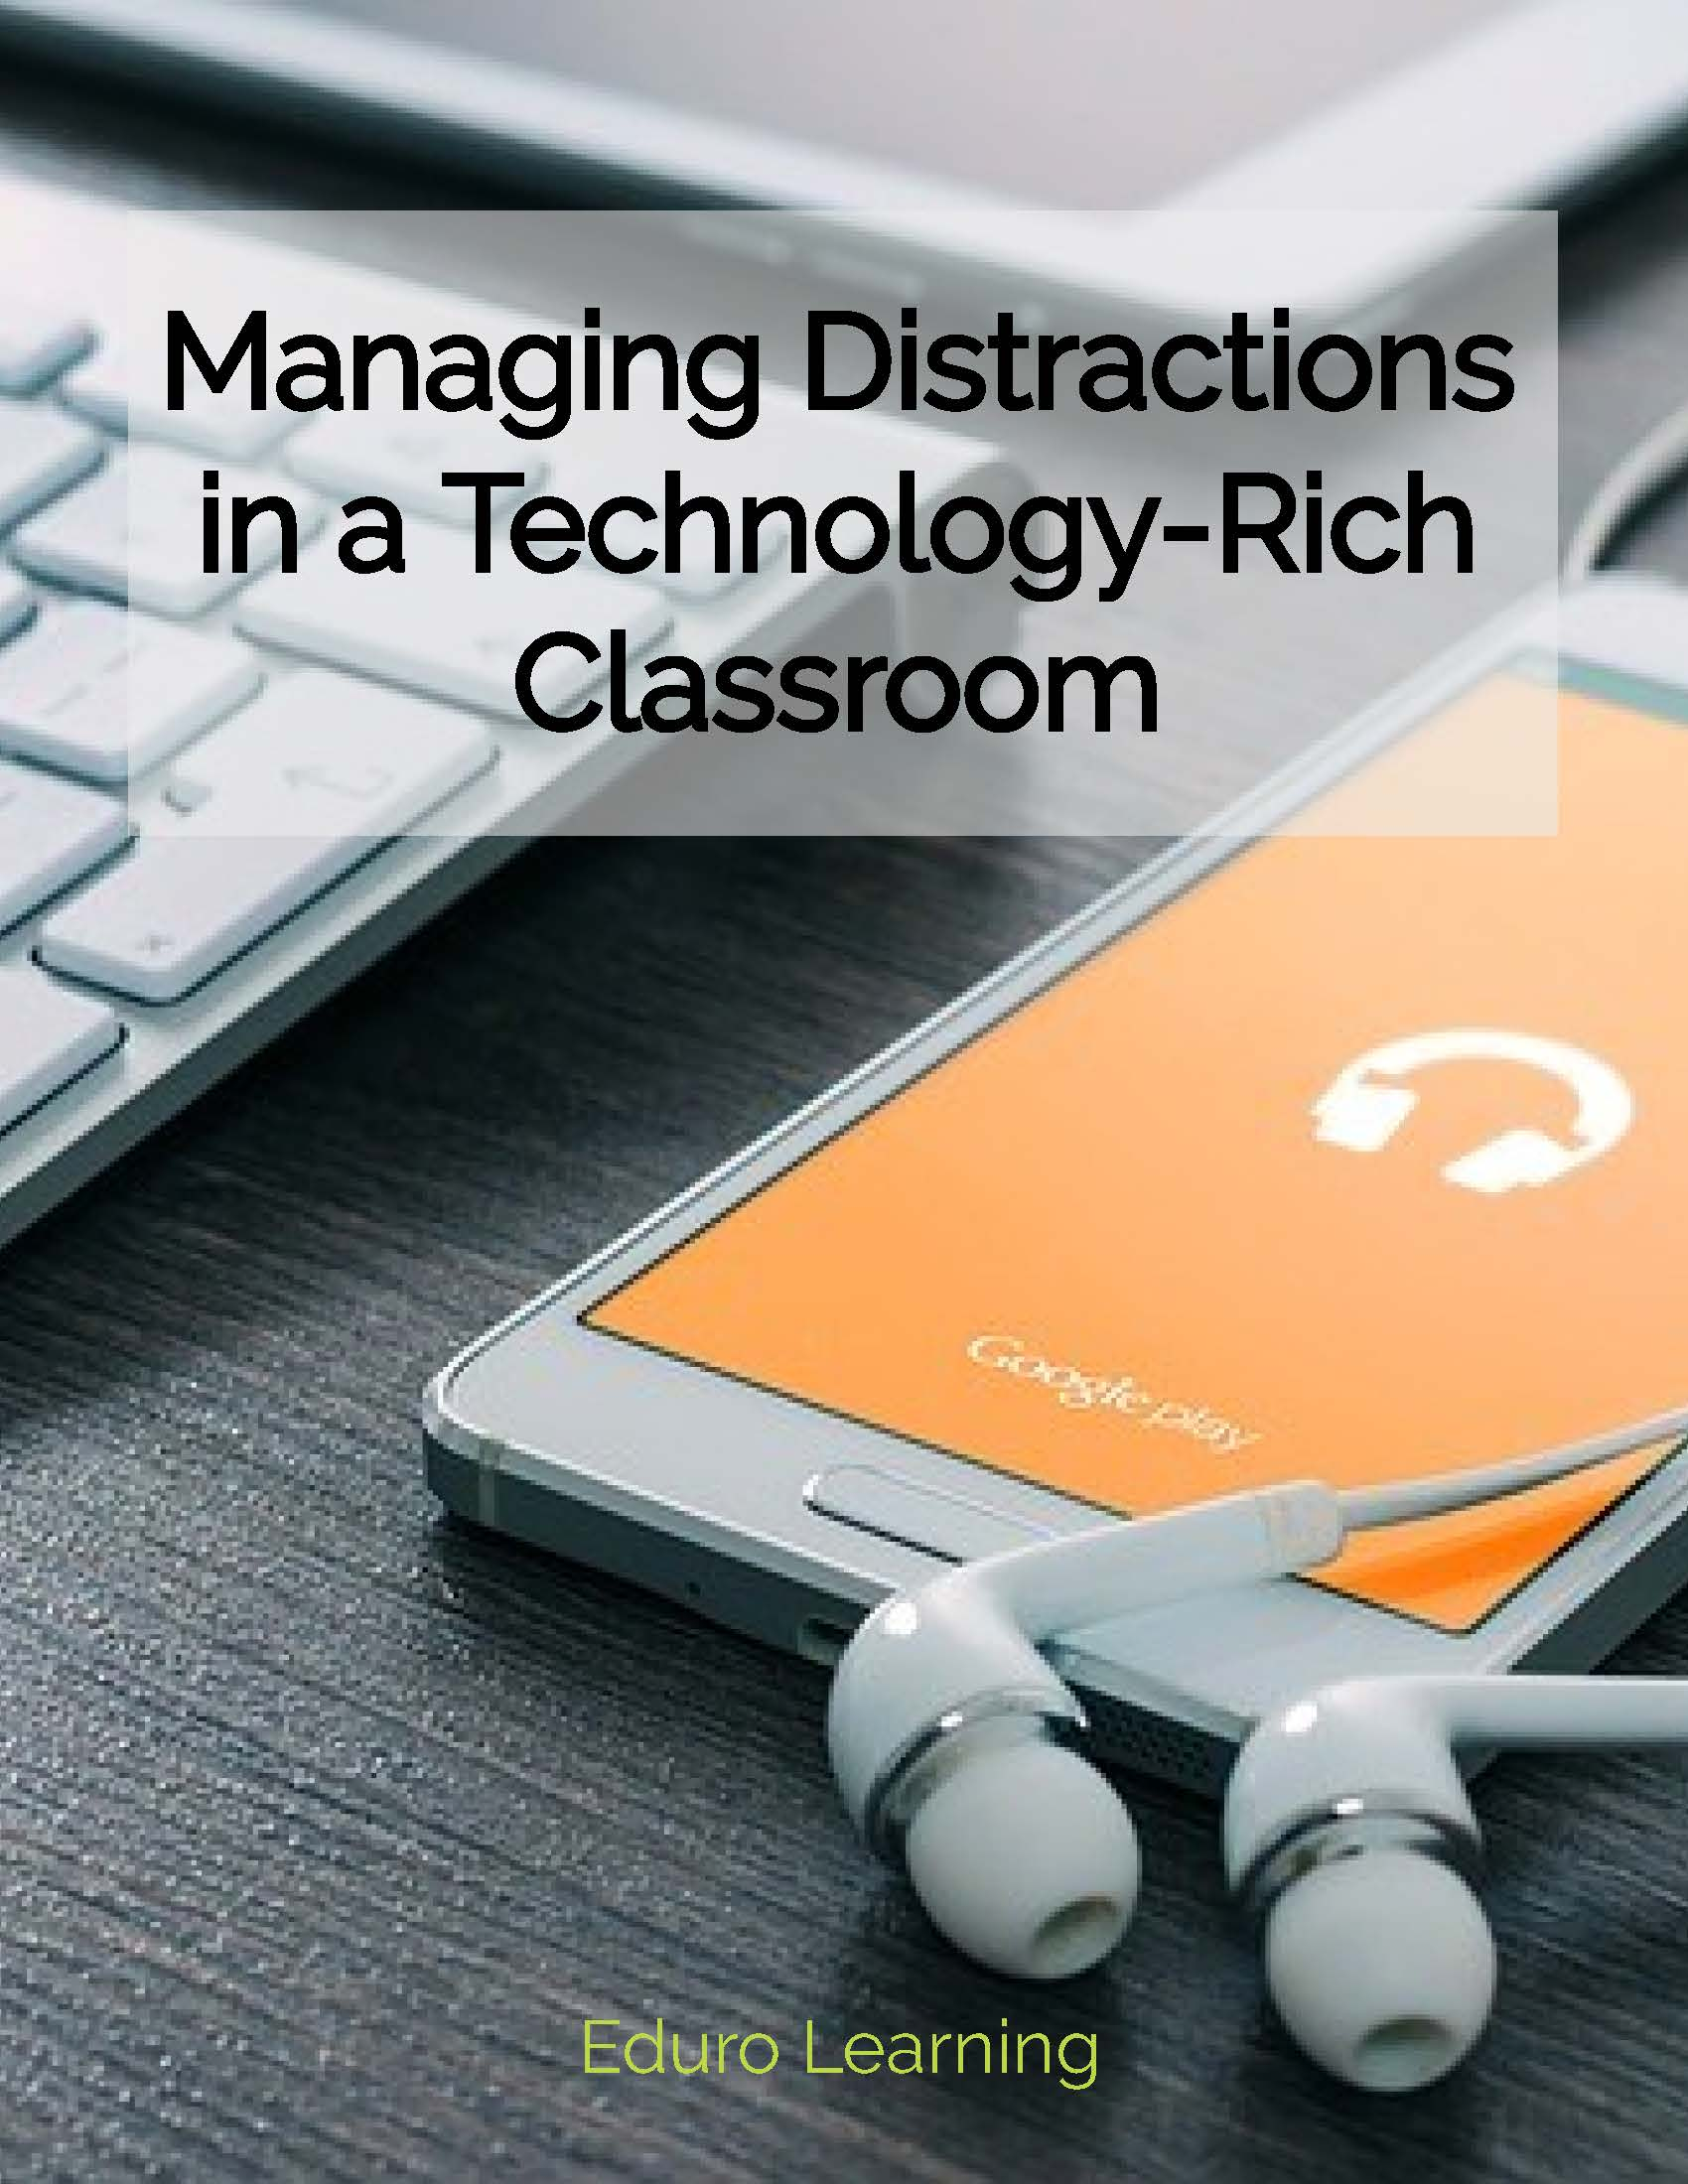 Managing_Distractions_in_a_Technology-Rich_Classroom_cover_fhzapn